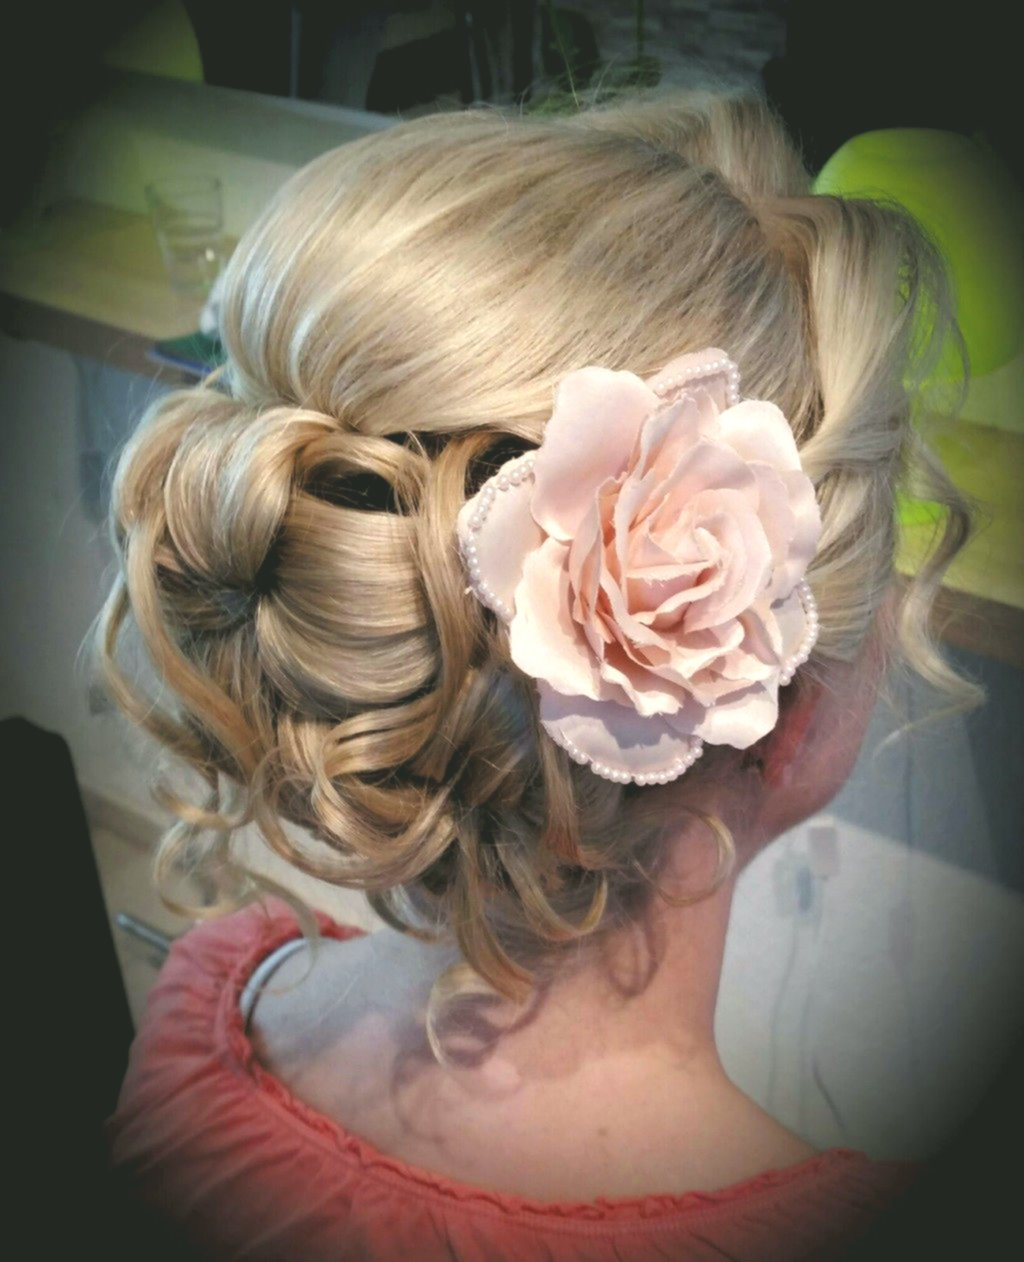 inspirational maiden hairstyles concept-charming maiden hairstyles photography